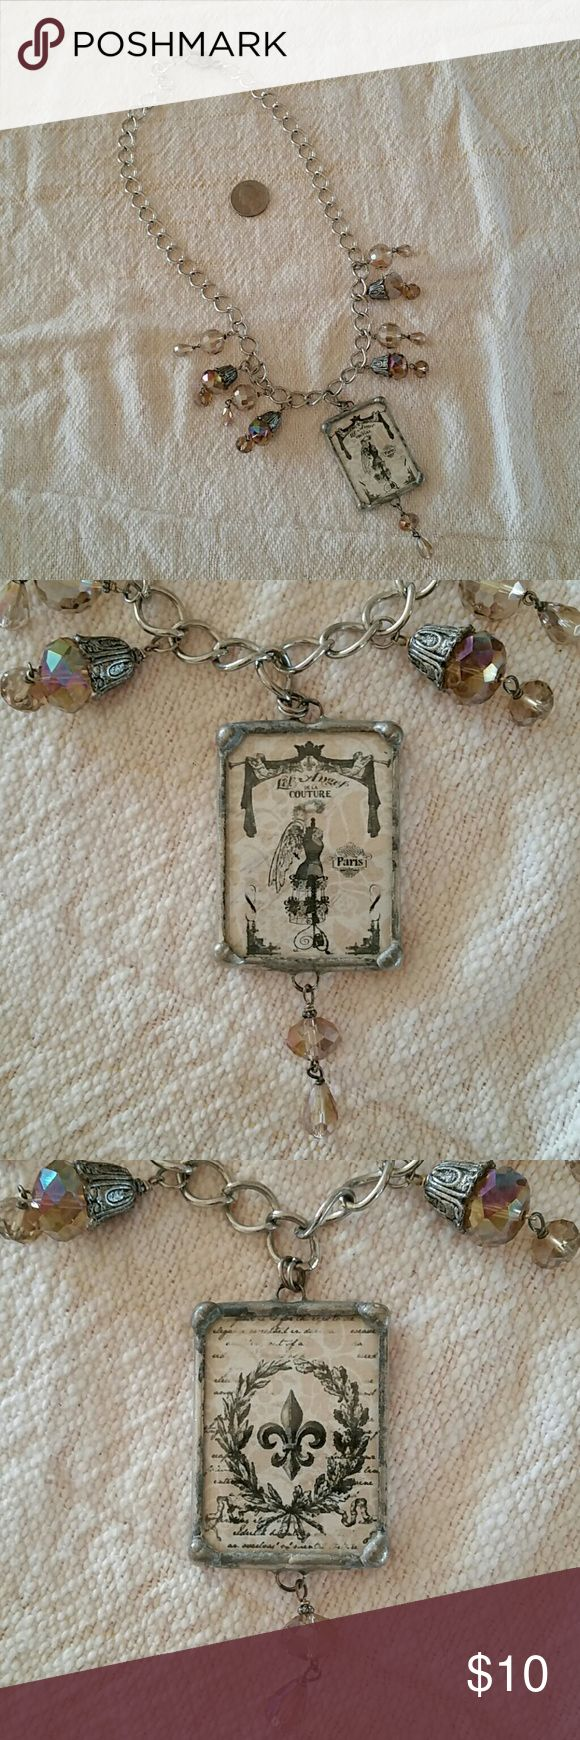 Long trendy necklace crystals and Paris picture Really cool necklace with soldered picture from Paris angel wings and fleur-de-lis Jewelry Necklaces